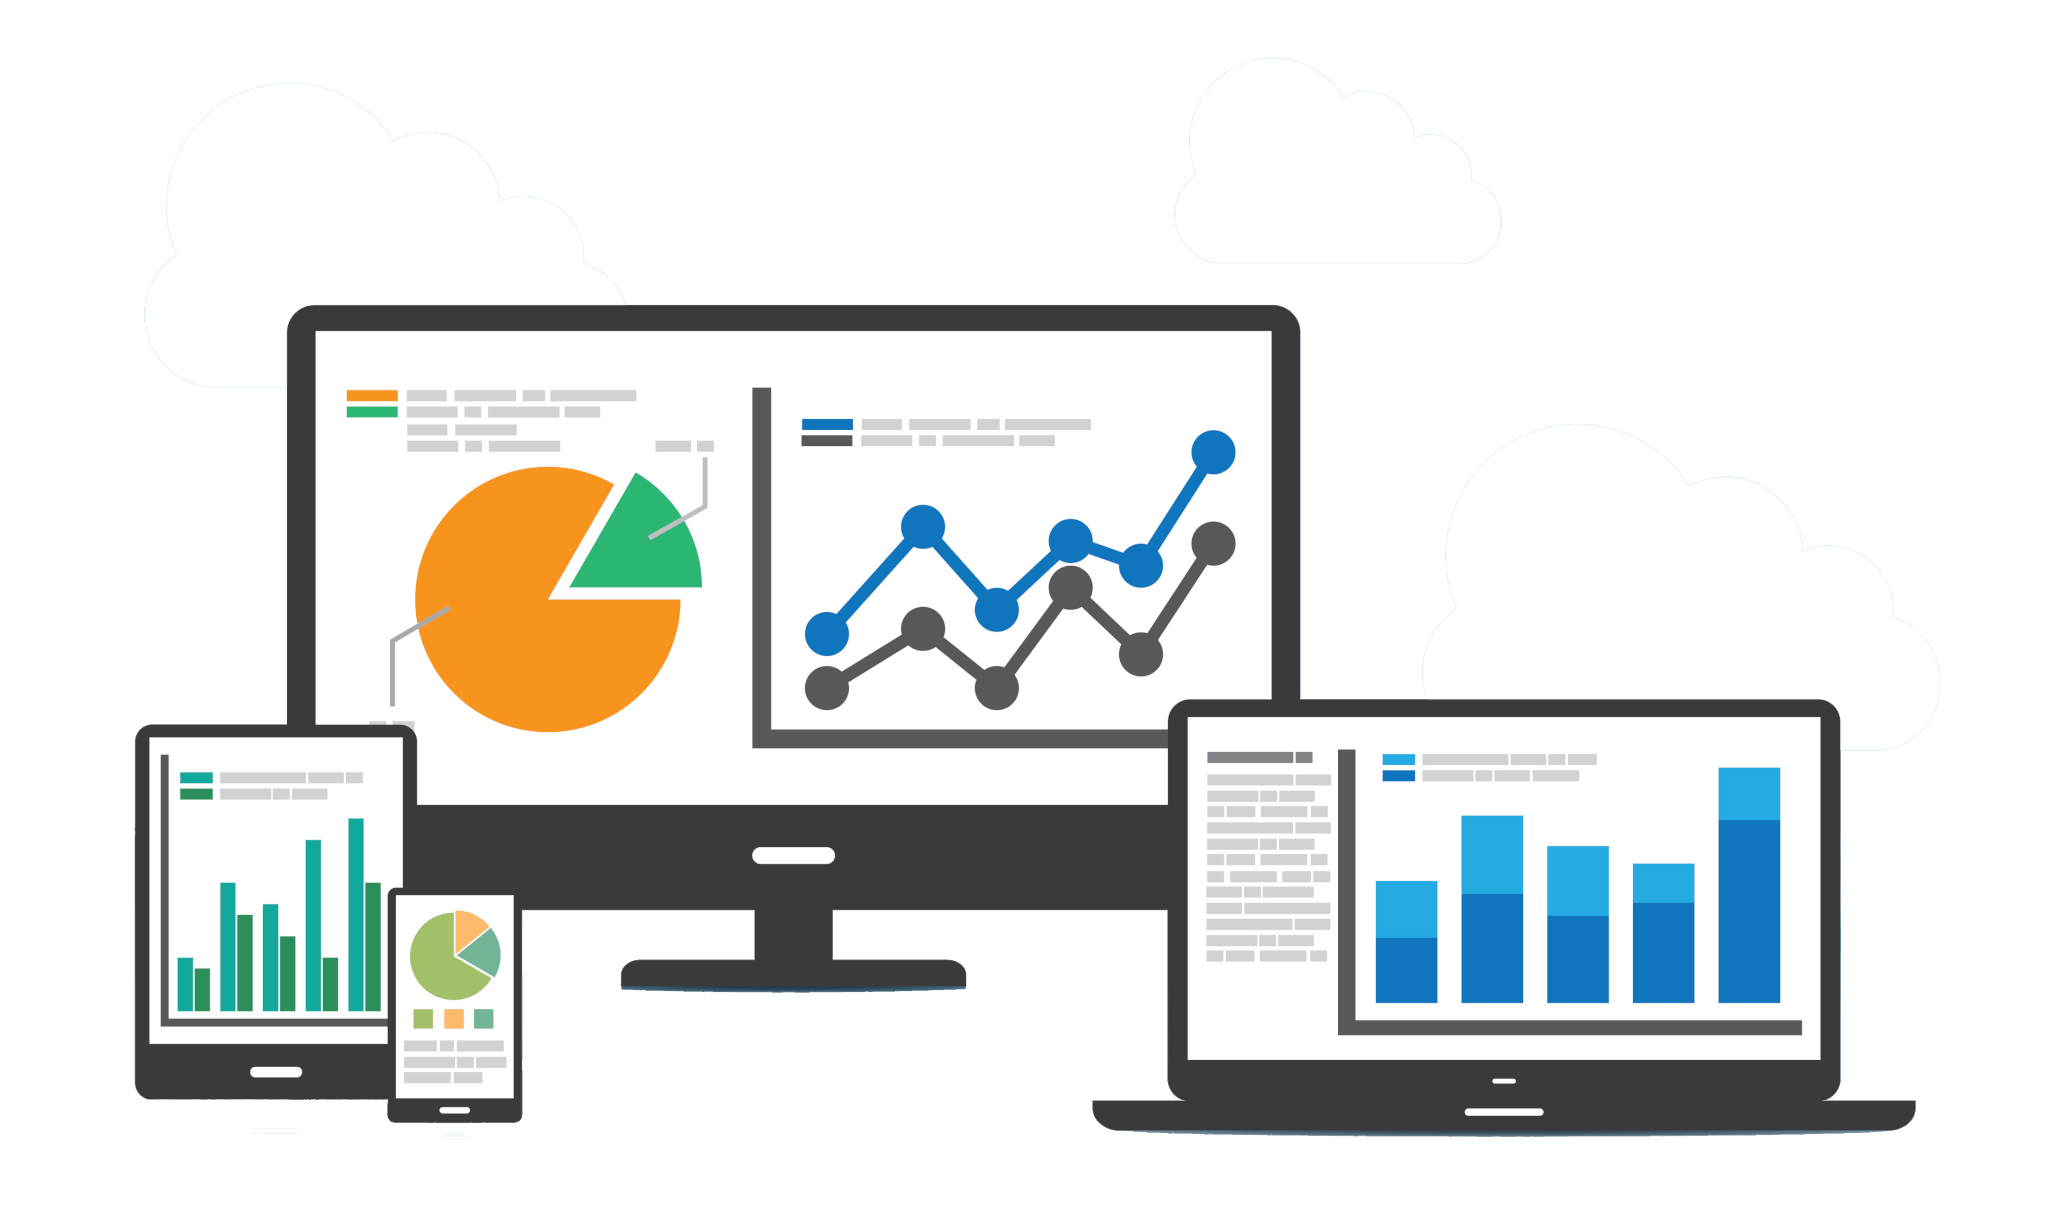 Analytics - Cloud